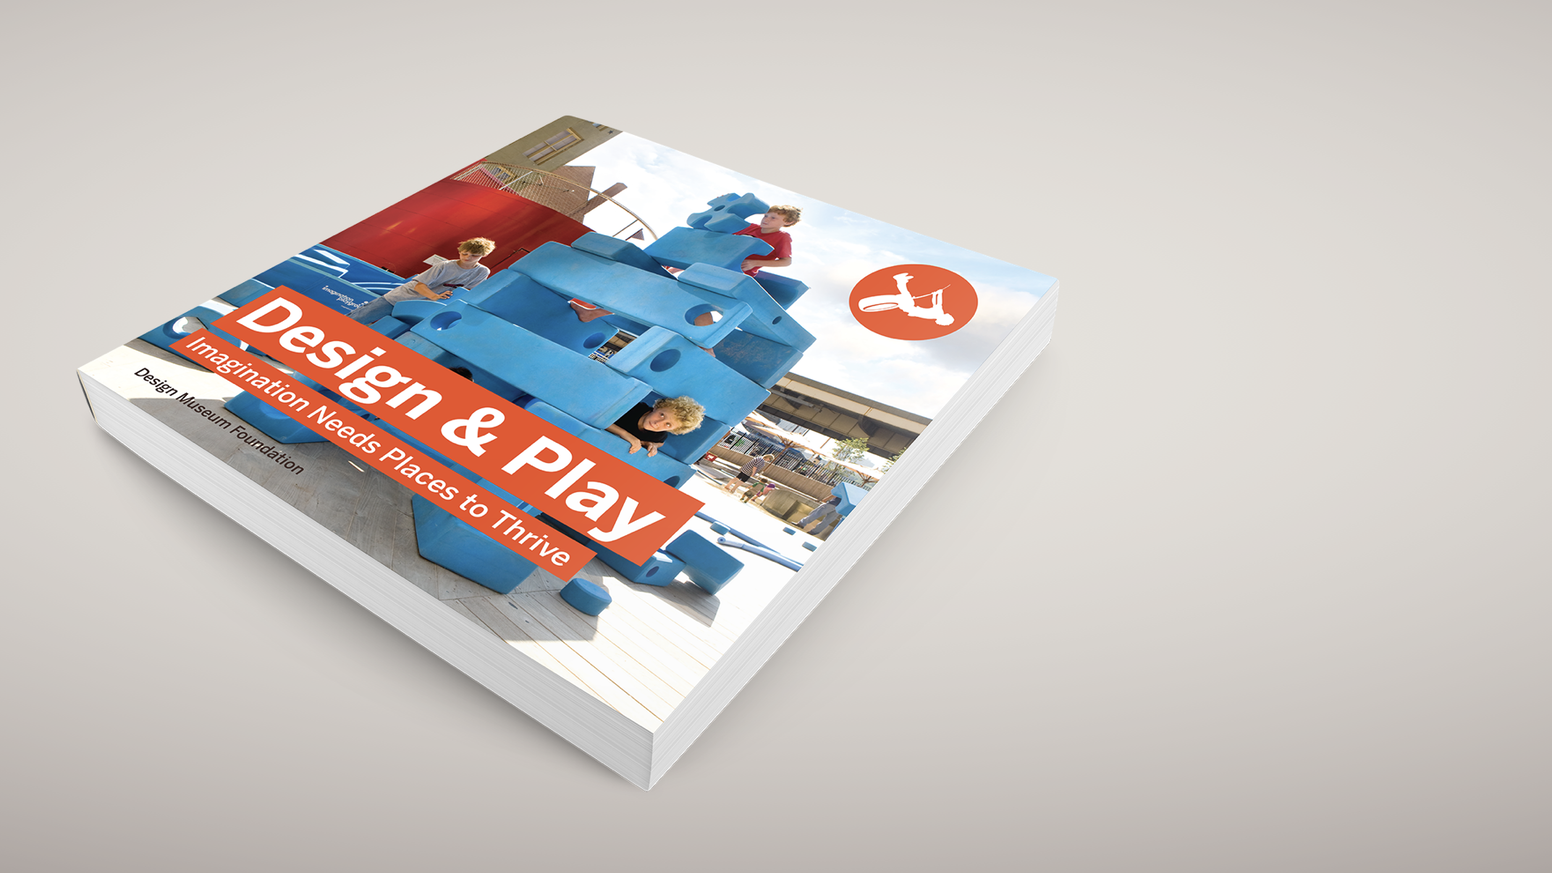 Design & Play is a book about design and the importance of outdoor play, featuring 40 case studies of extraordinary playscapes & more.